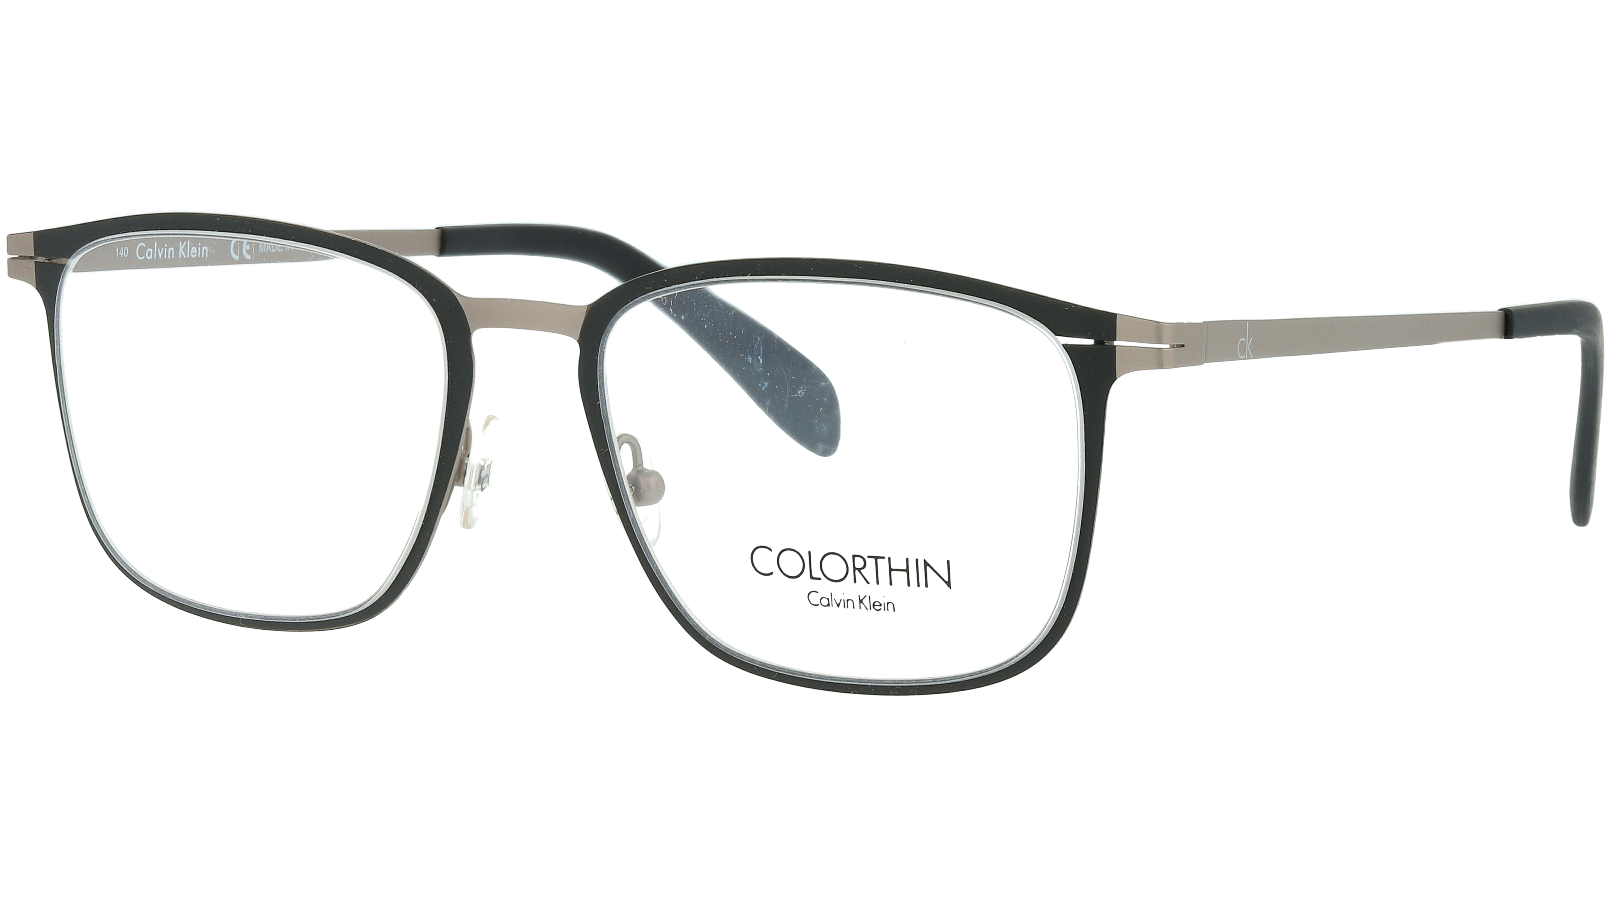 CALVIN KLEIN CK5426 001 52 BLACK Glasses